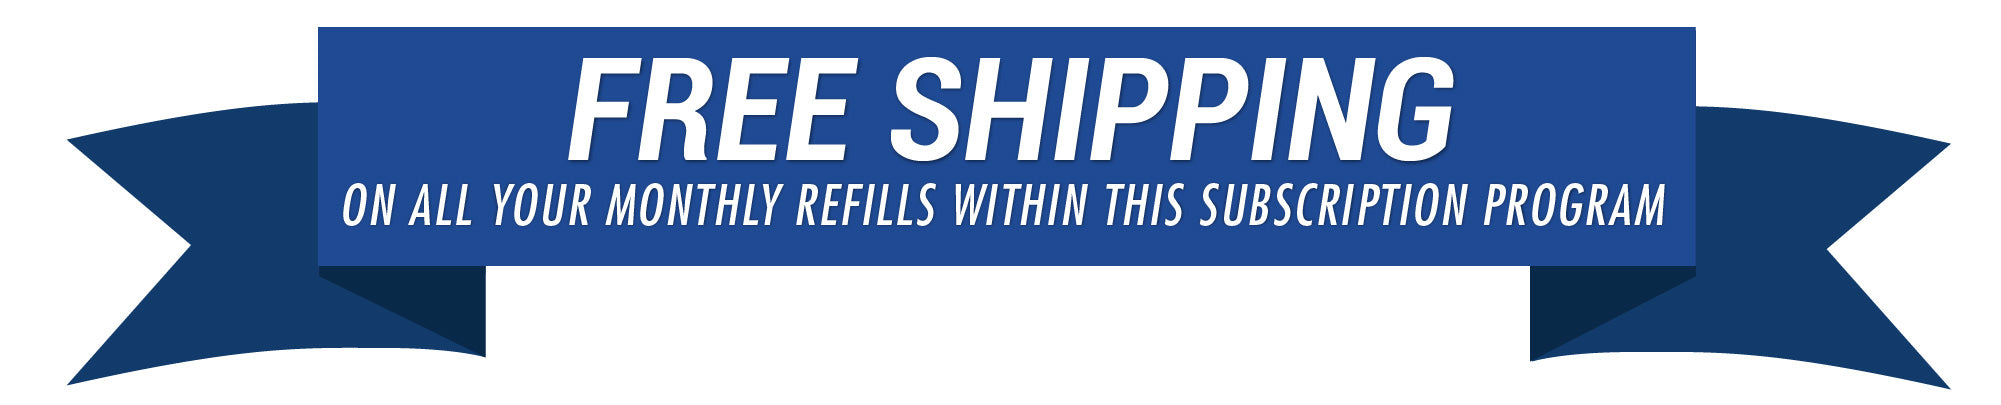 Free Shipping with Subscriptions